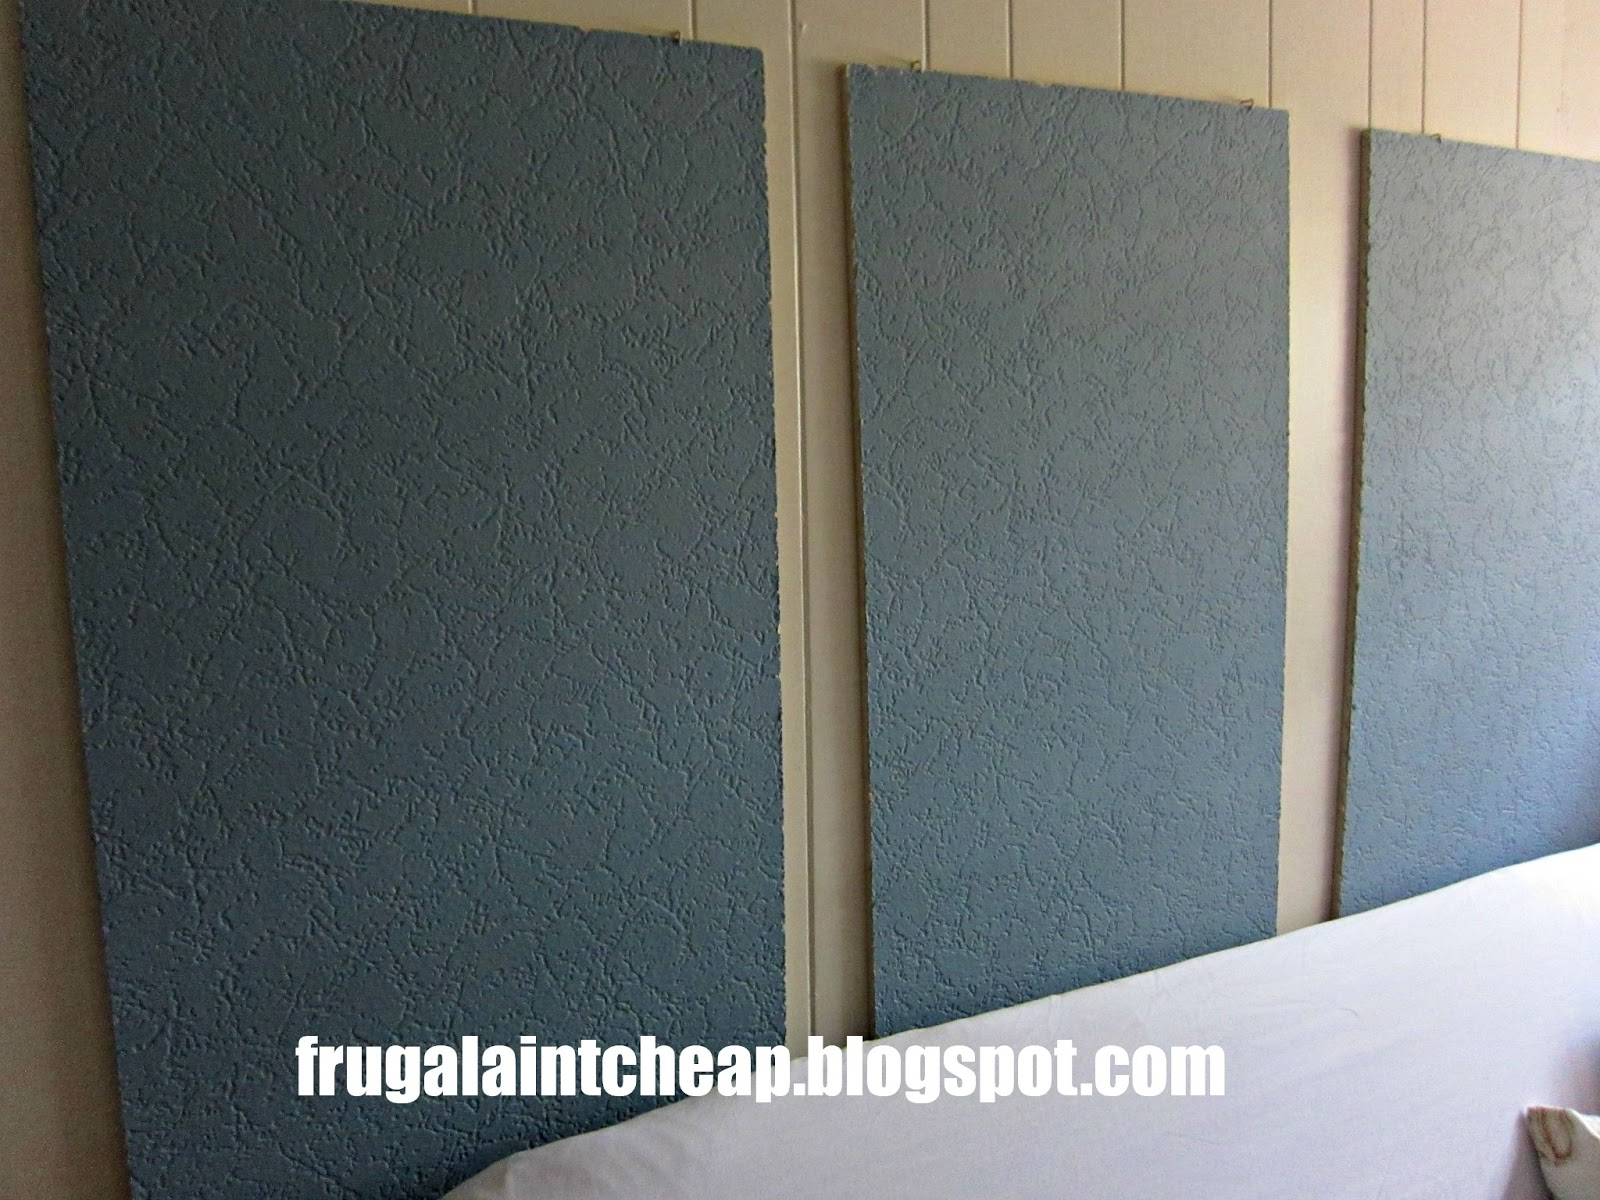 Frugal ain 39 t cheap soundproofing a room Soundproofing for walls interior